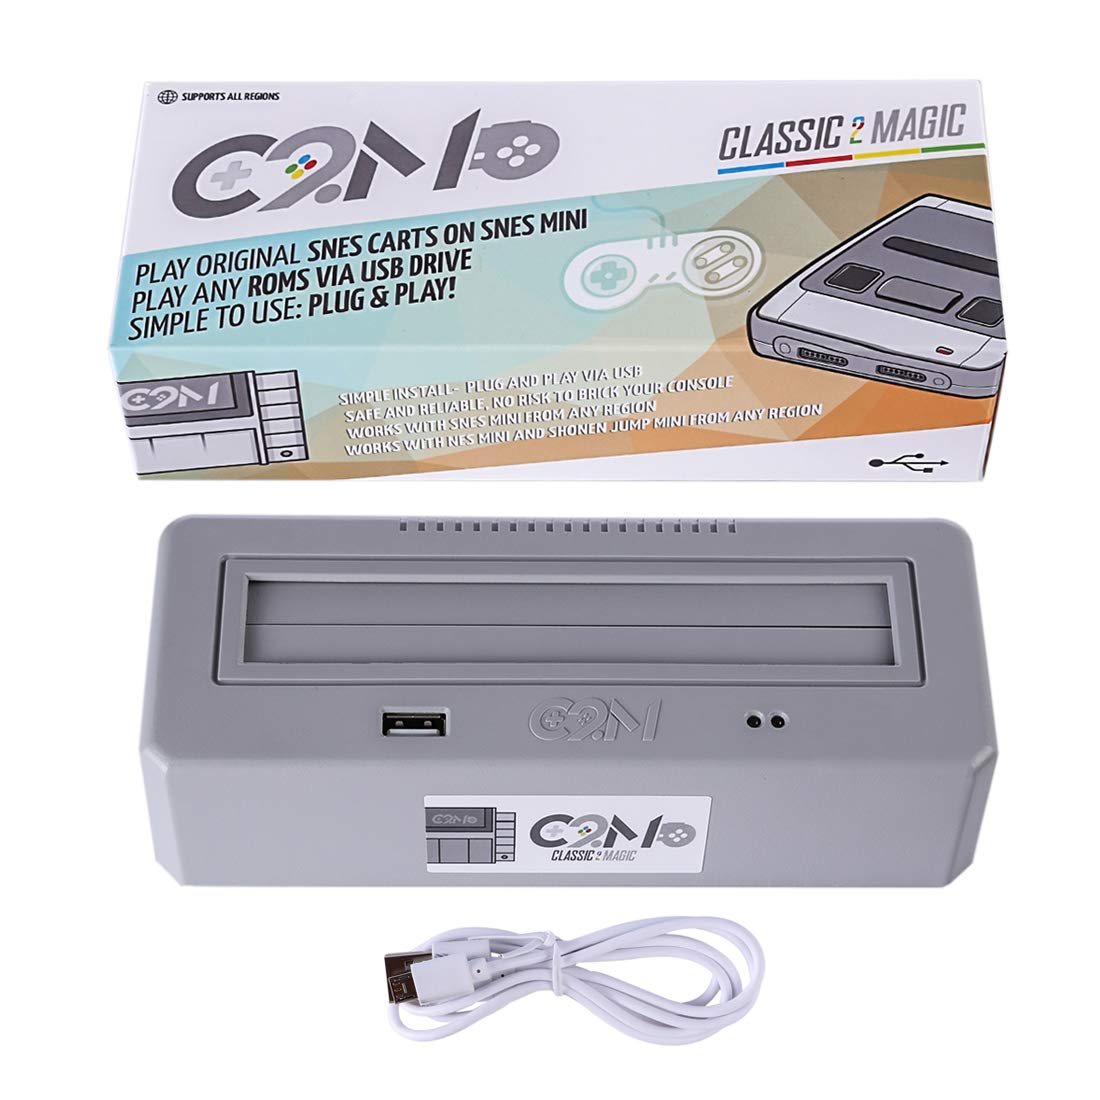 YIFAN Classic 2 Magic Plays for Original SNES Game Carts, High Compatible with Any SNES Region